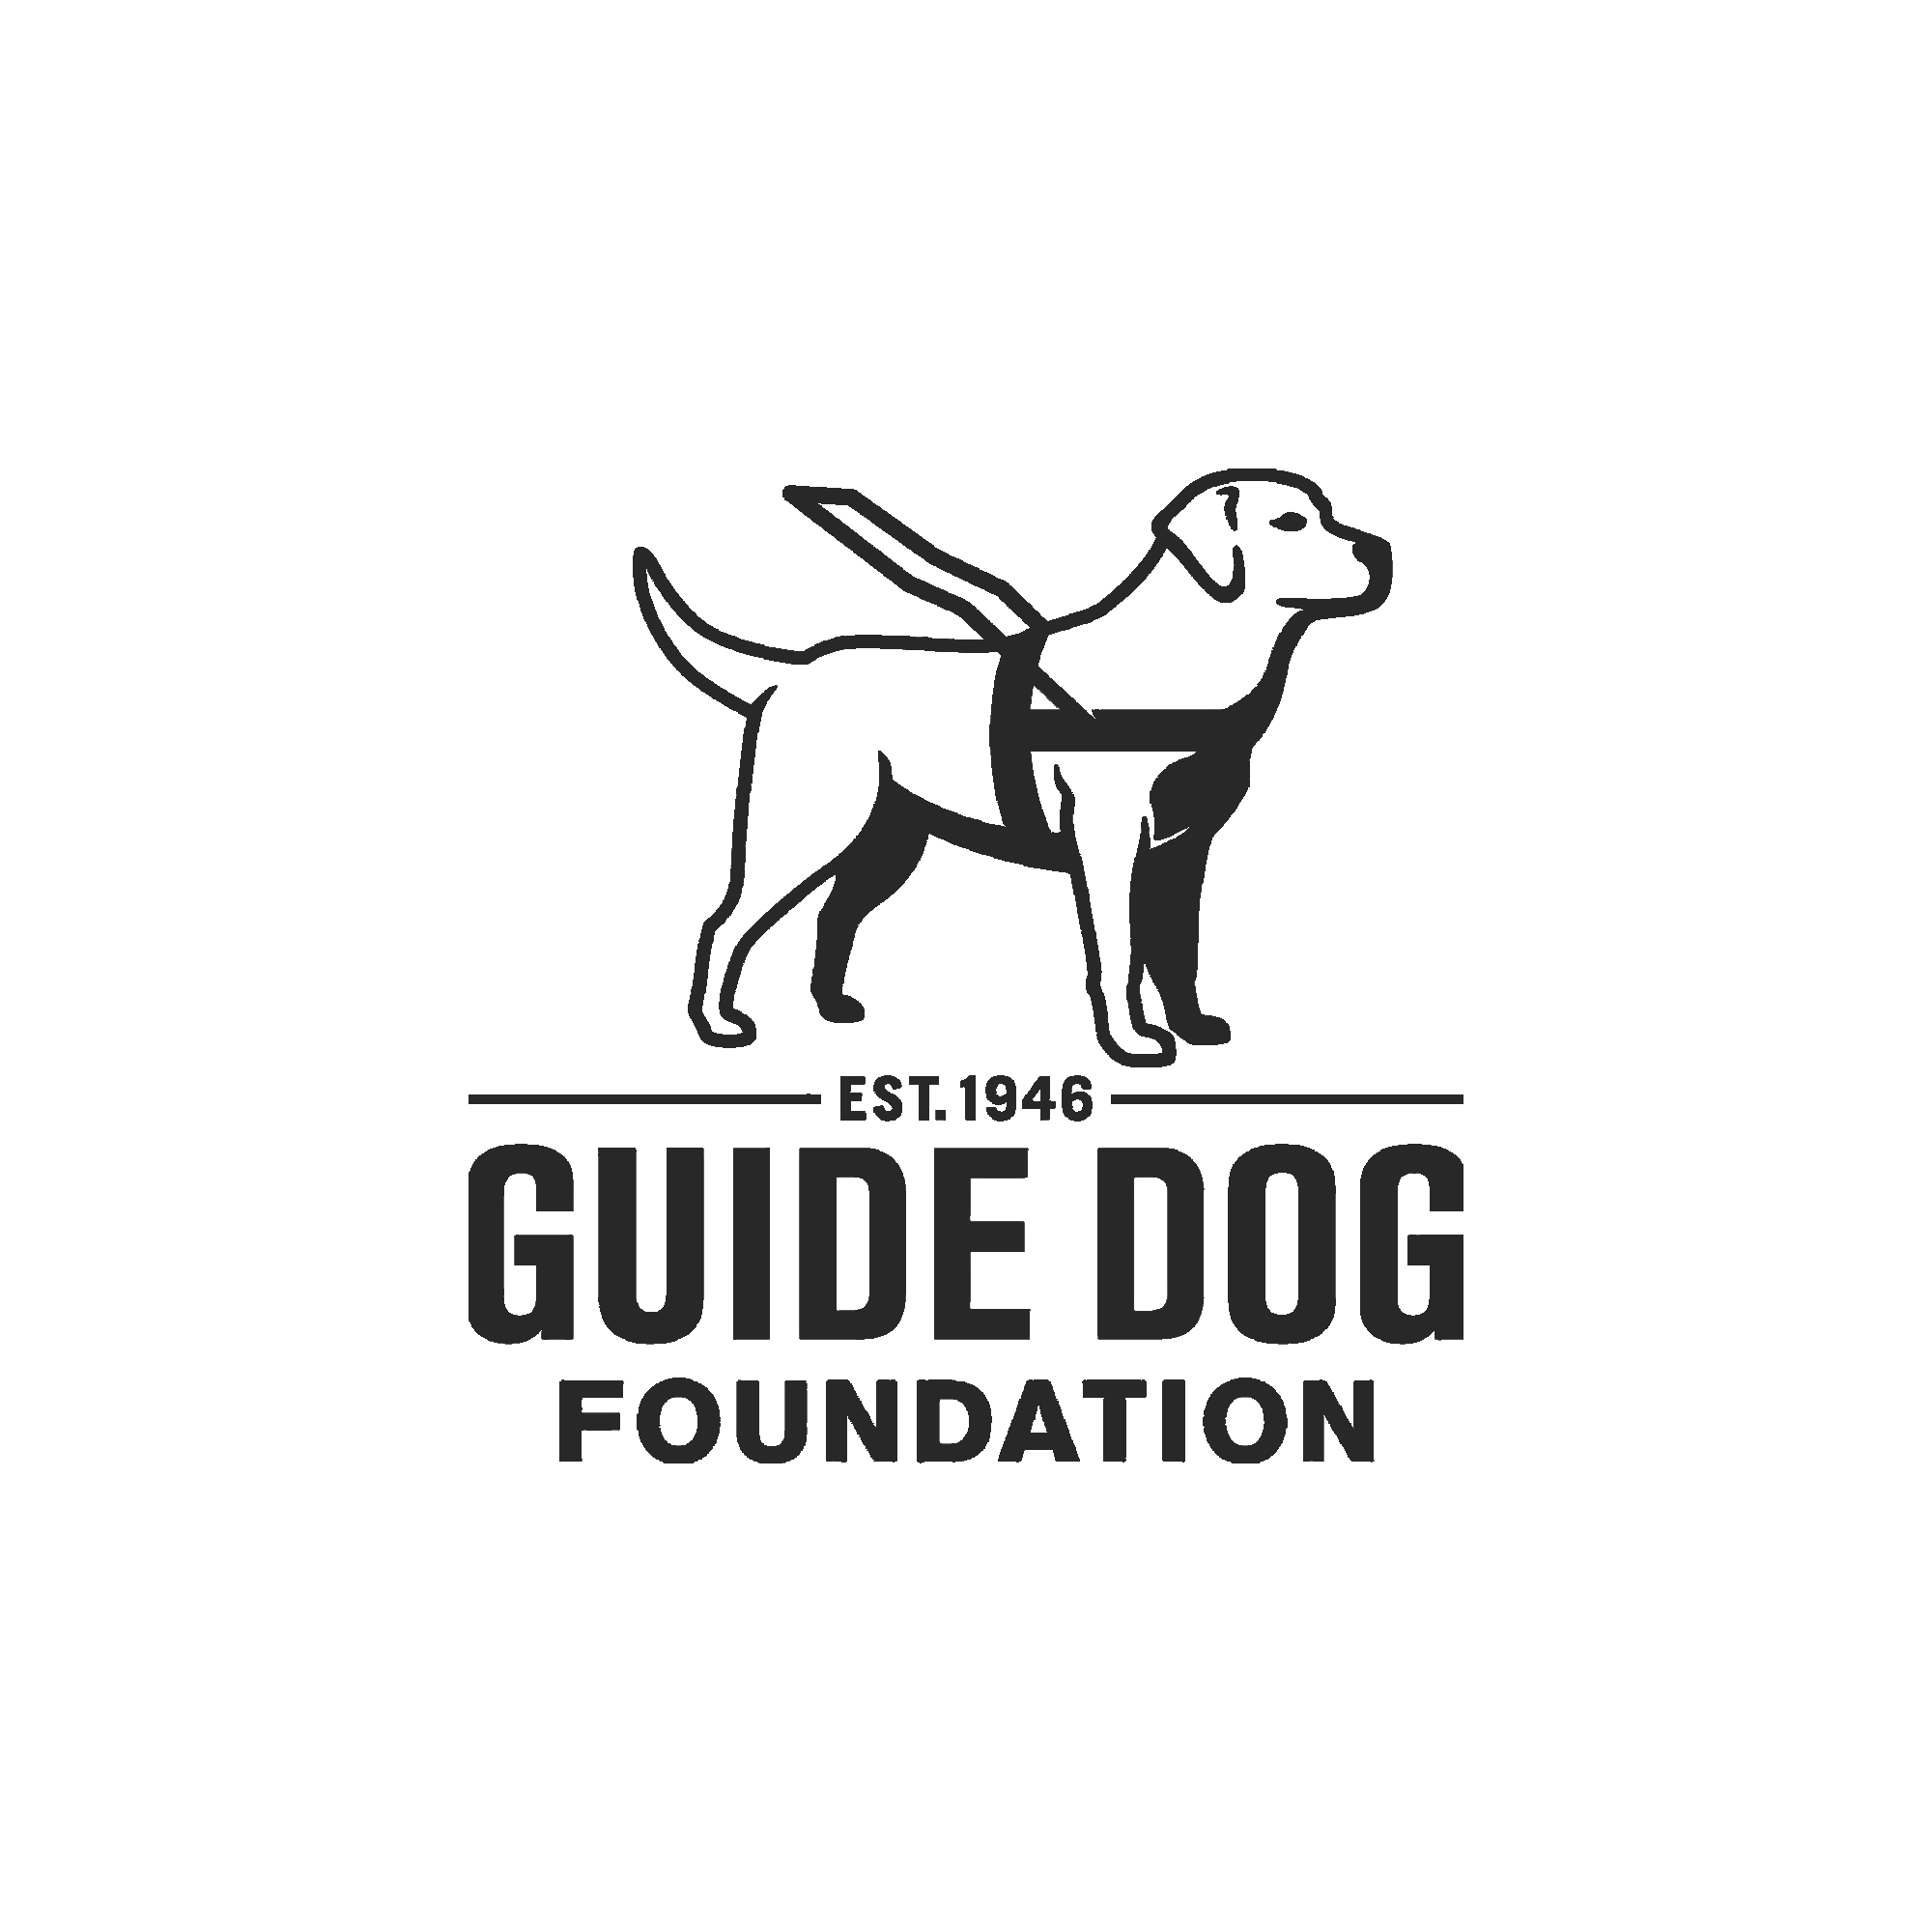 17_Guide Dog-GREY.png